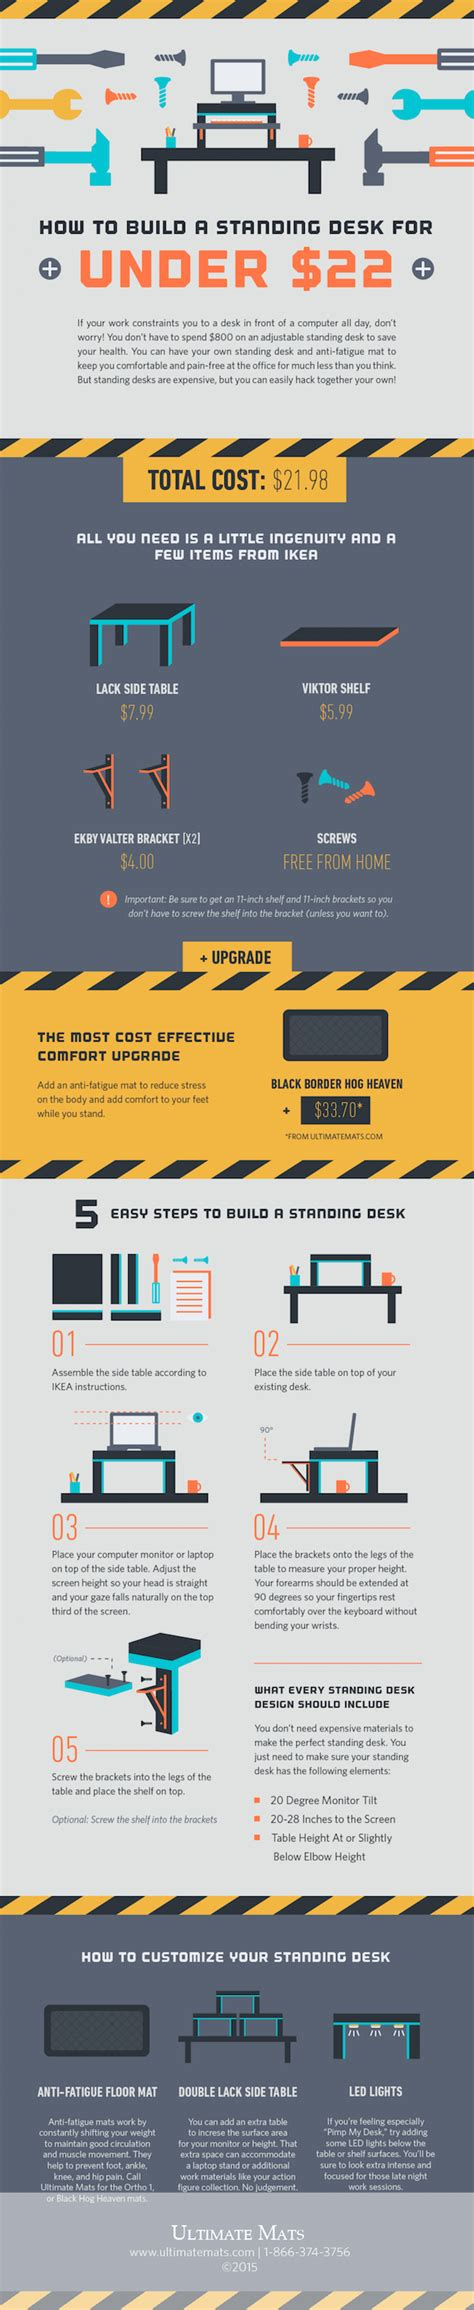 how to build a standing desk how to build a standing desk for 22 infographic